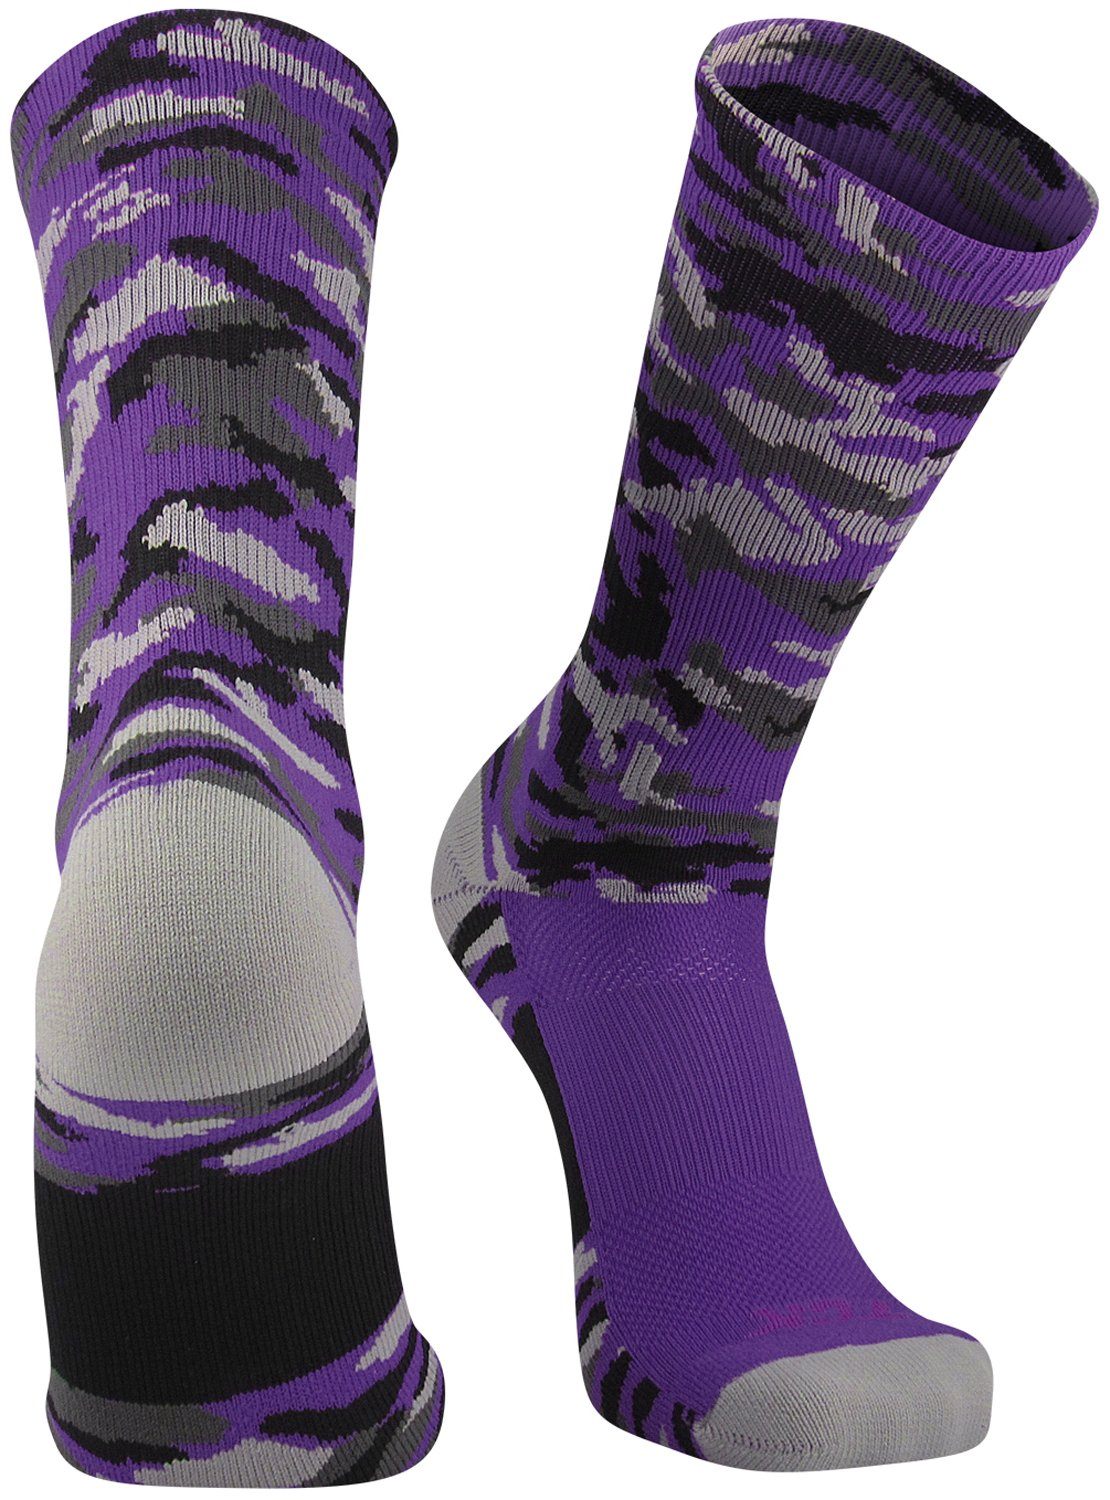 TCK Sports Elite Woodland Camo Crew Socks, Purple, Large